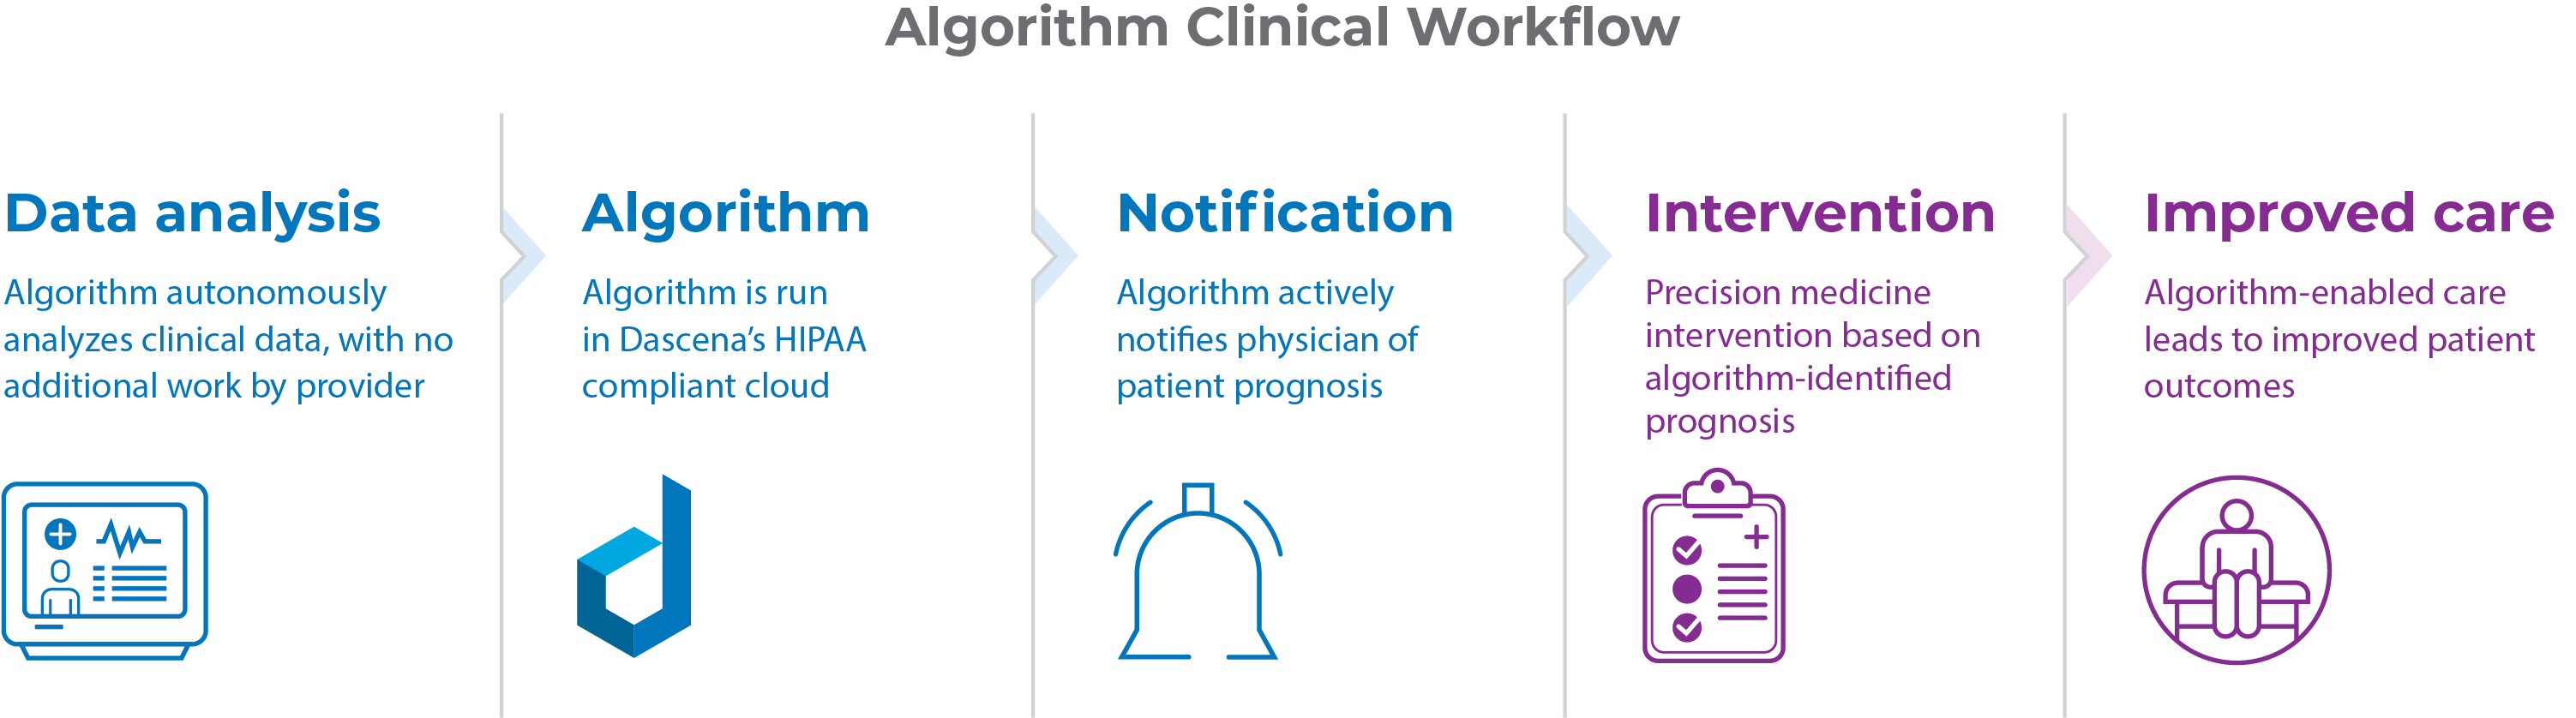 Clinical_workflow